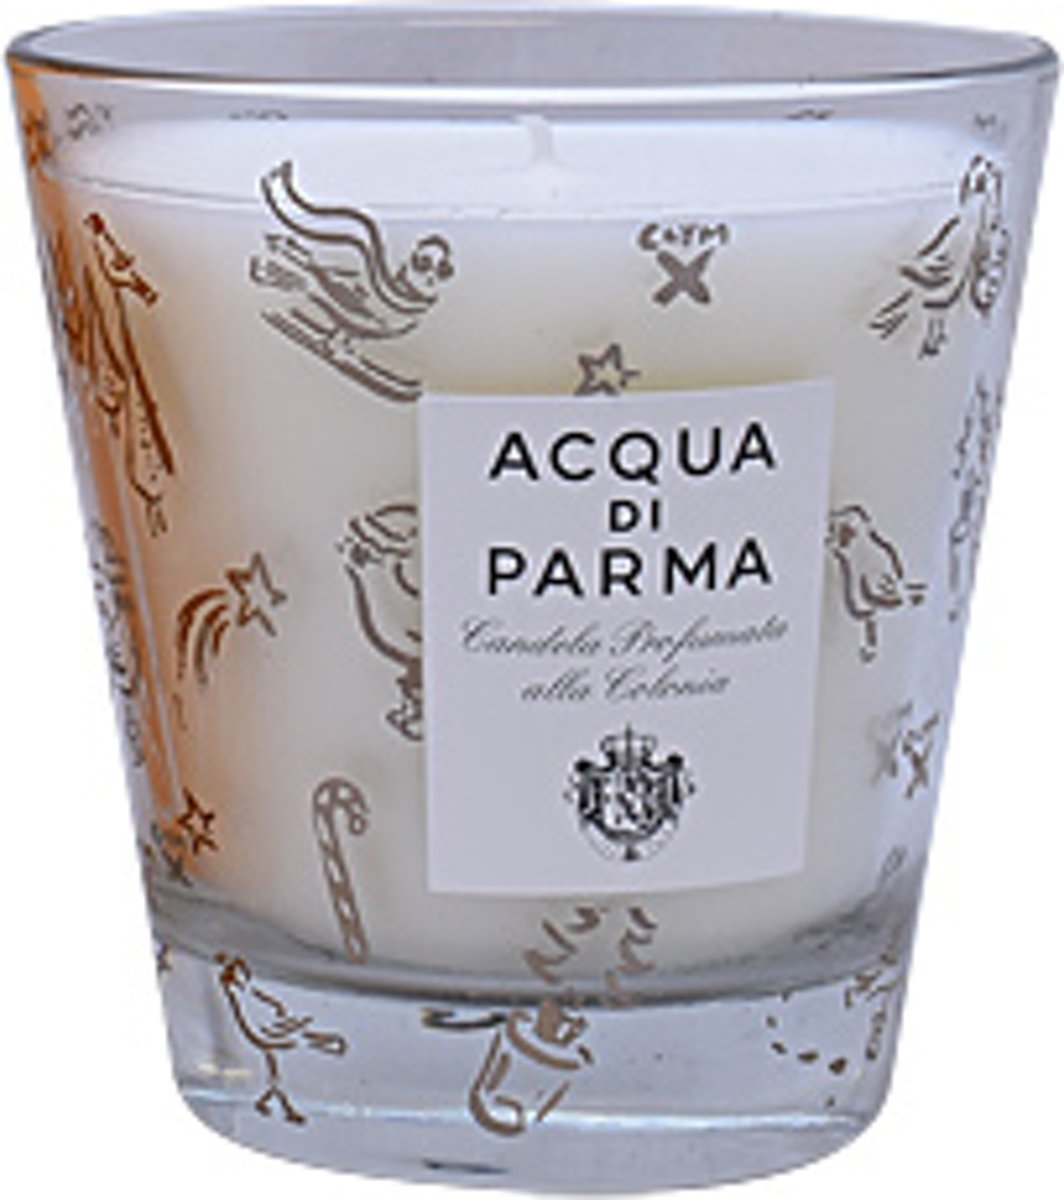 Acqua Di Parma cologne perfumed candle special edition